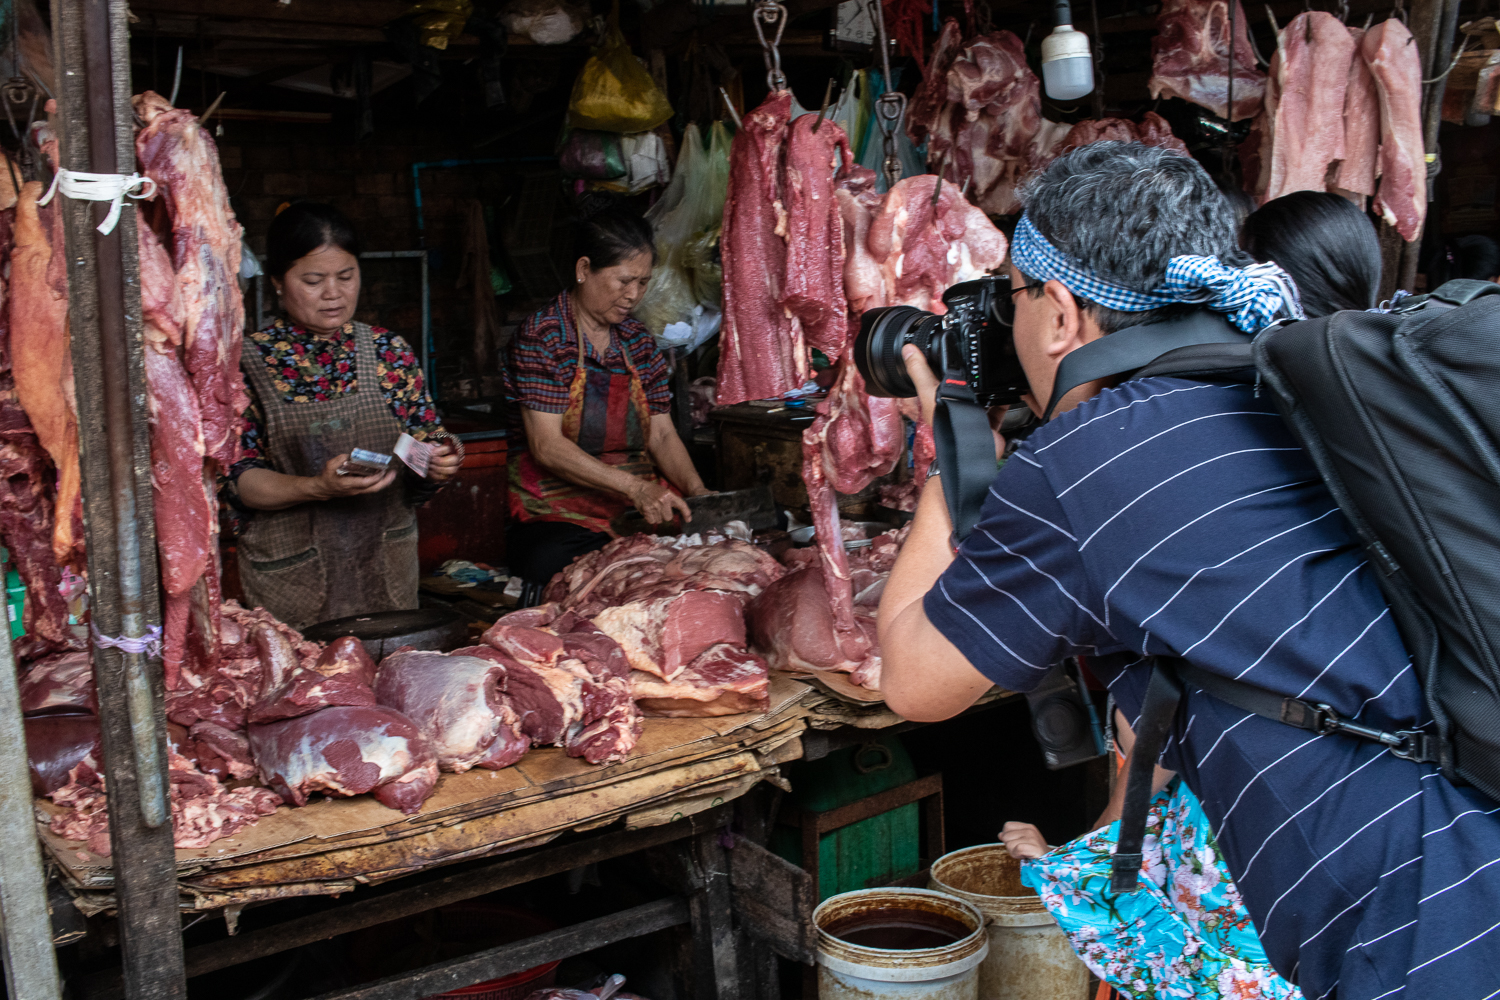 Akira capturing the action at a local wet market on the one day street photography workshop.